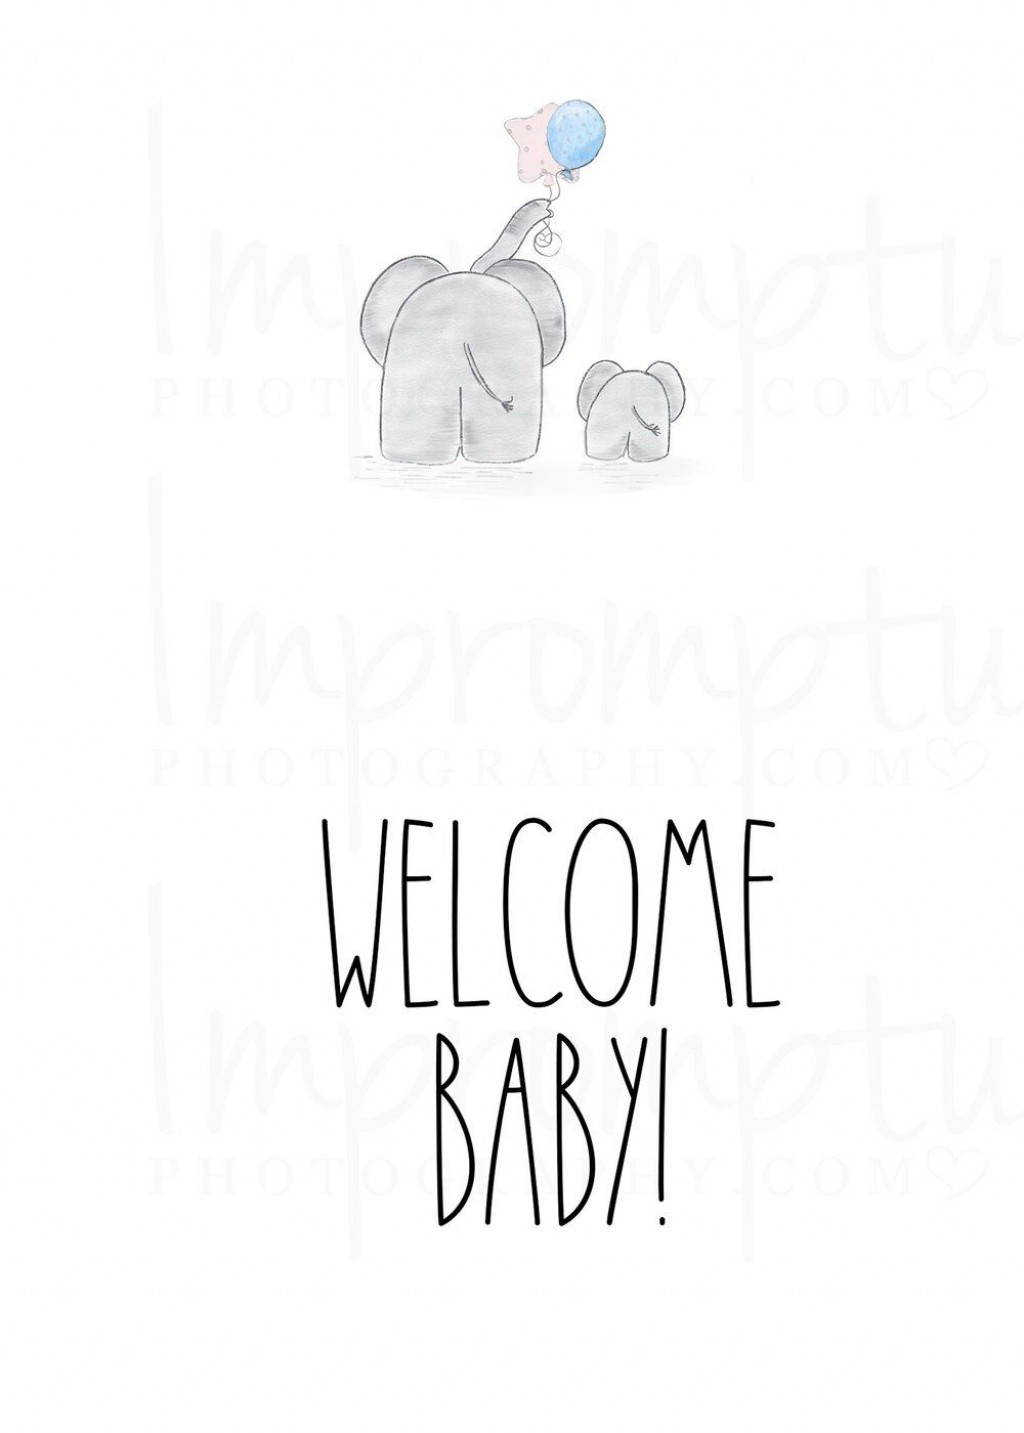 010 Dreaded Baby Shower Card Printable Black And White Highest Quality Large